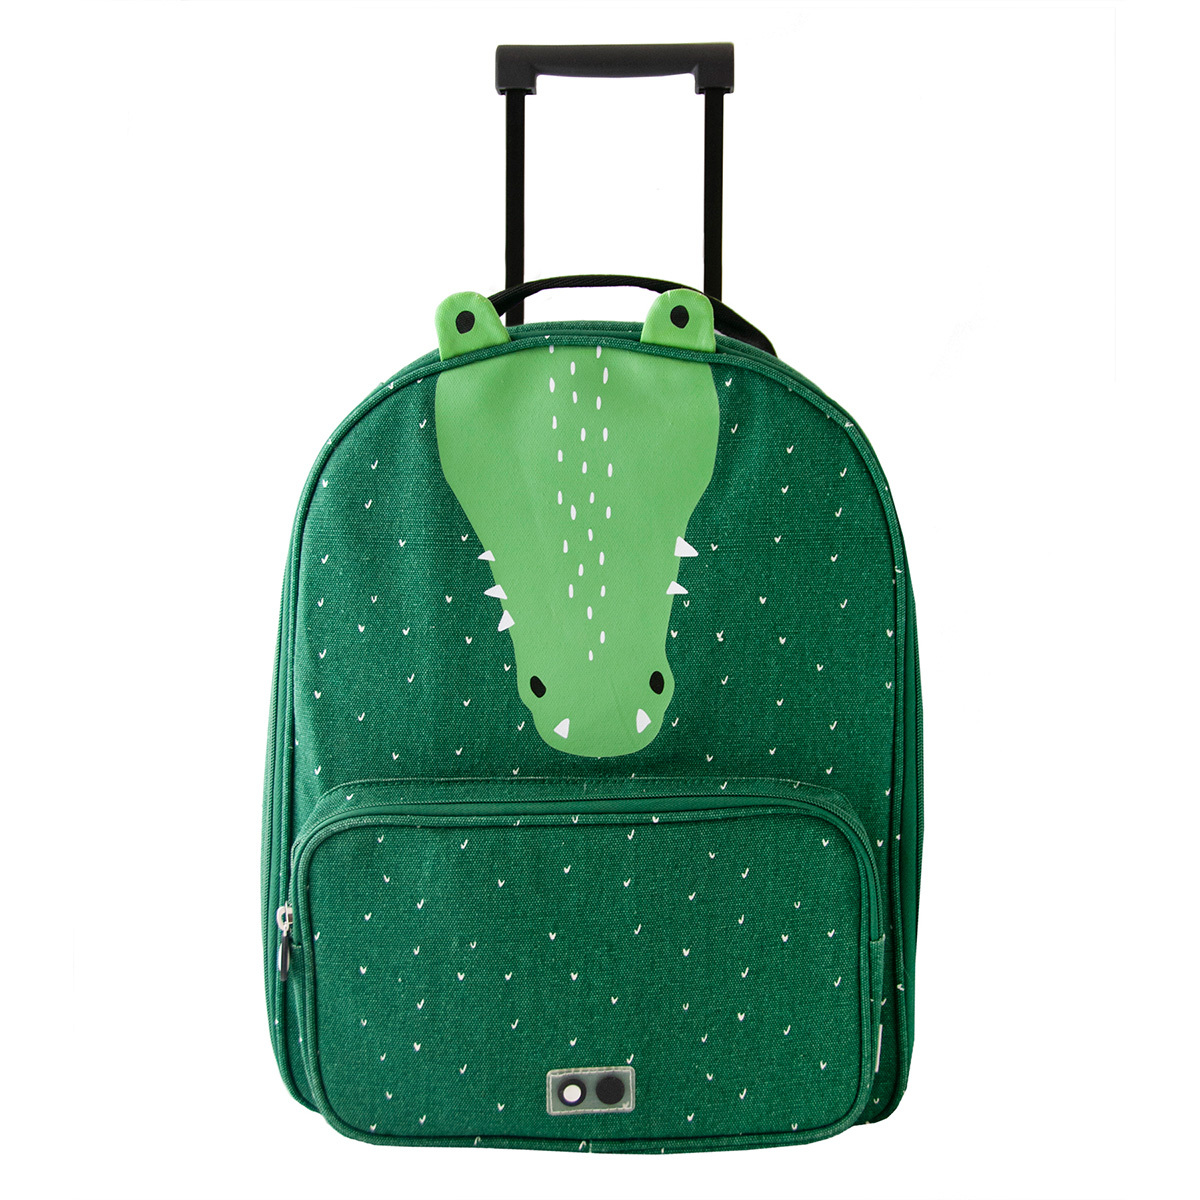 Bagagerie enfant Valise Trolley Mr. Crocodile Valise Trolley Mr. Crocodile